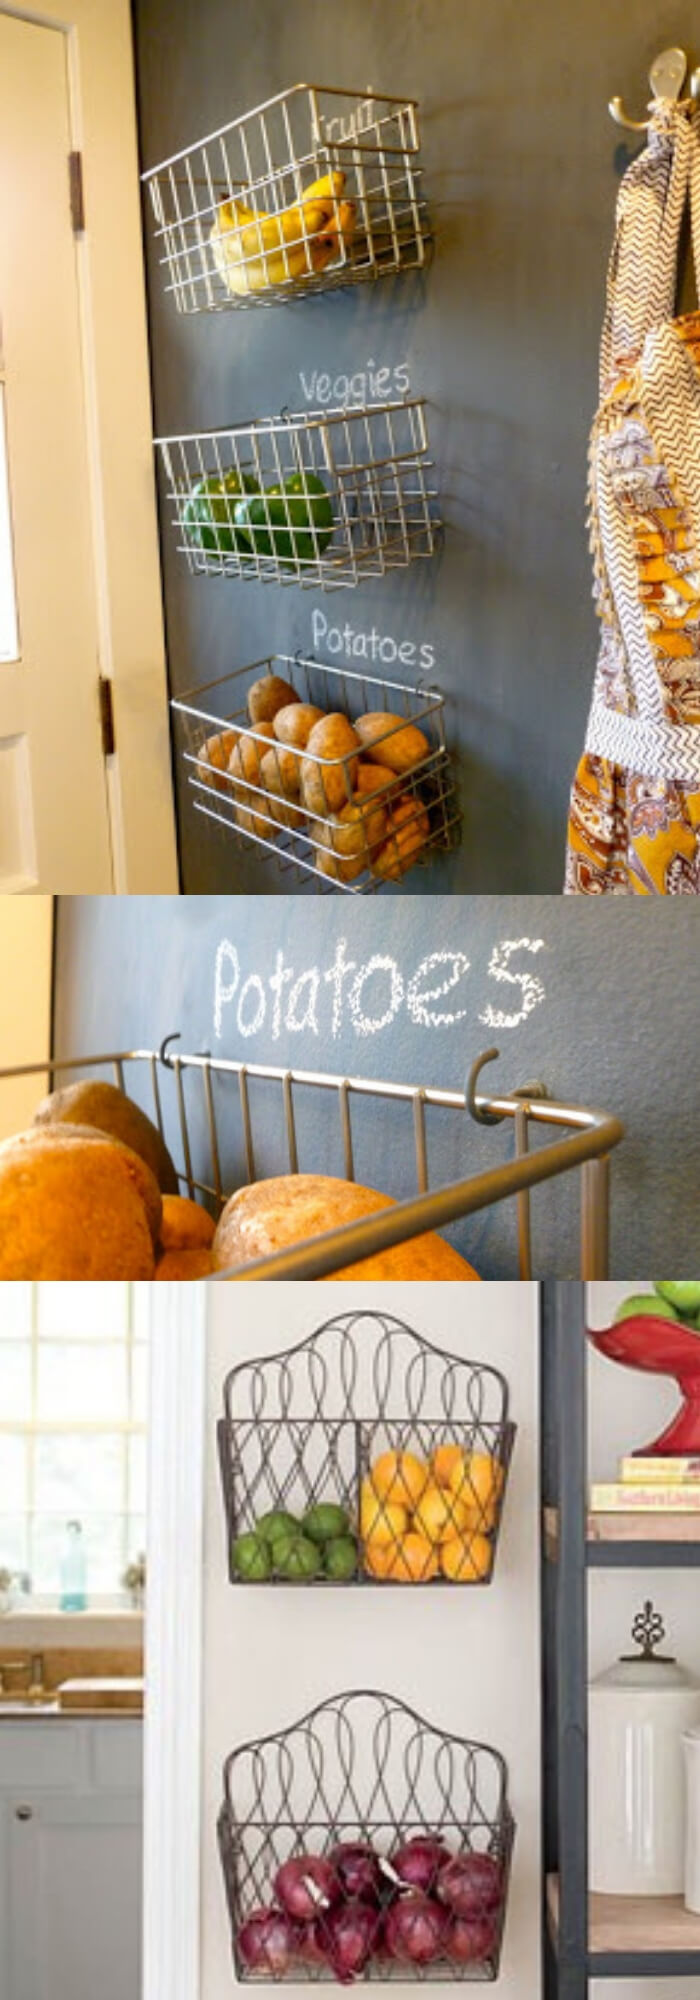 Fruit and Veggie Hanging Wall Baskets   Best Fruit and Vegetable Storage Ideas For Your Kitchen